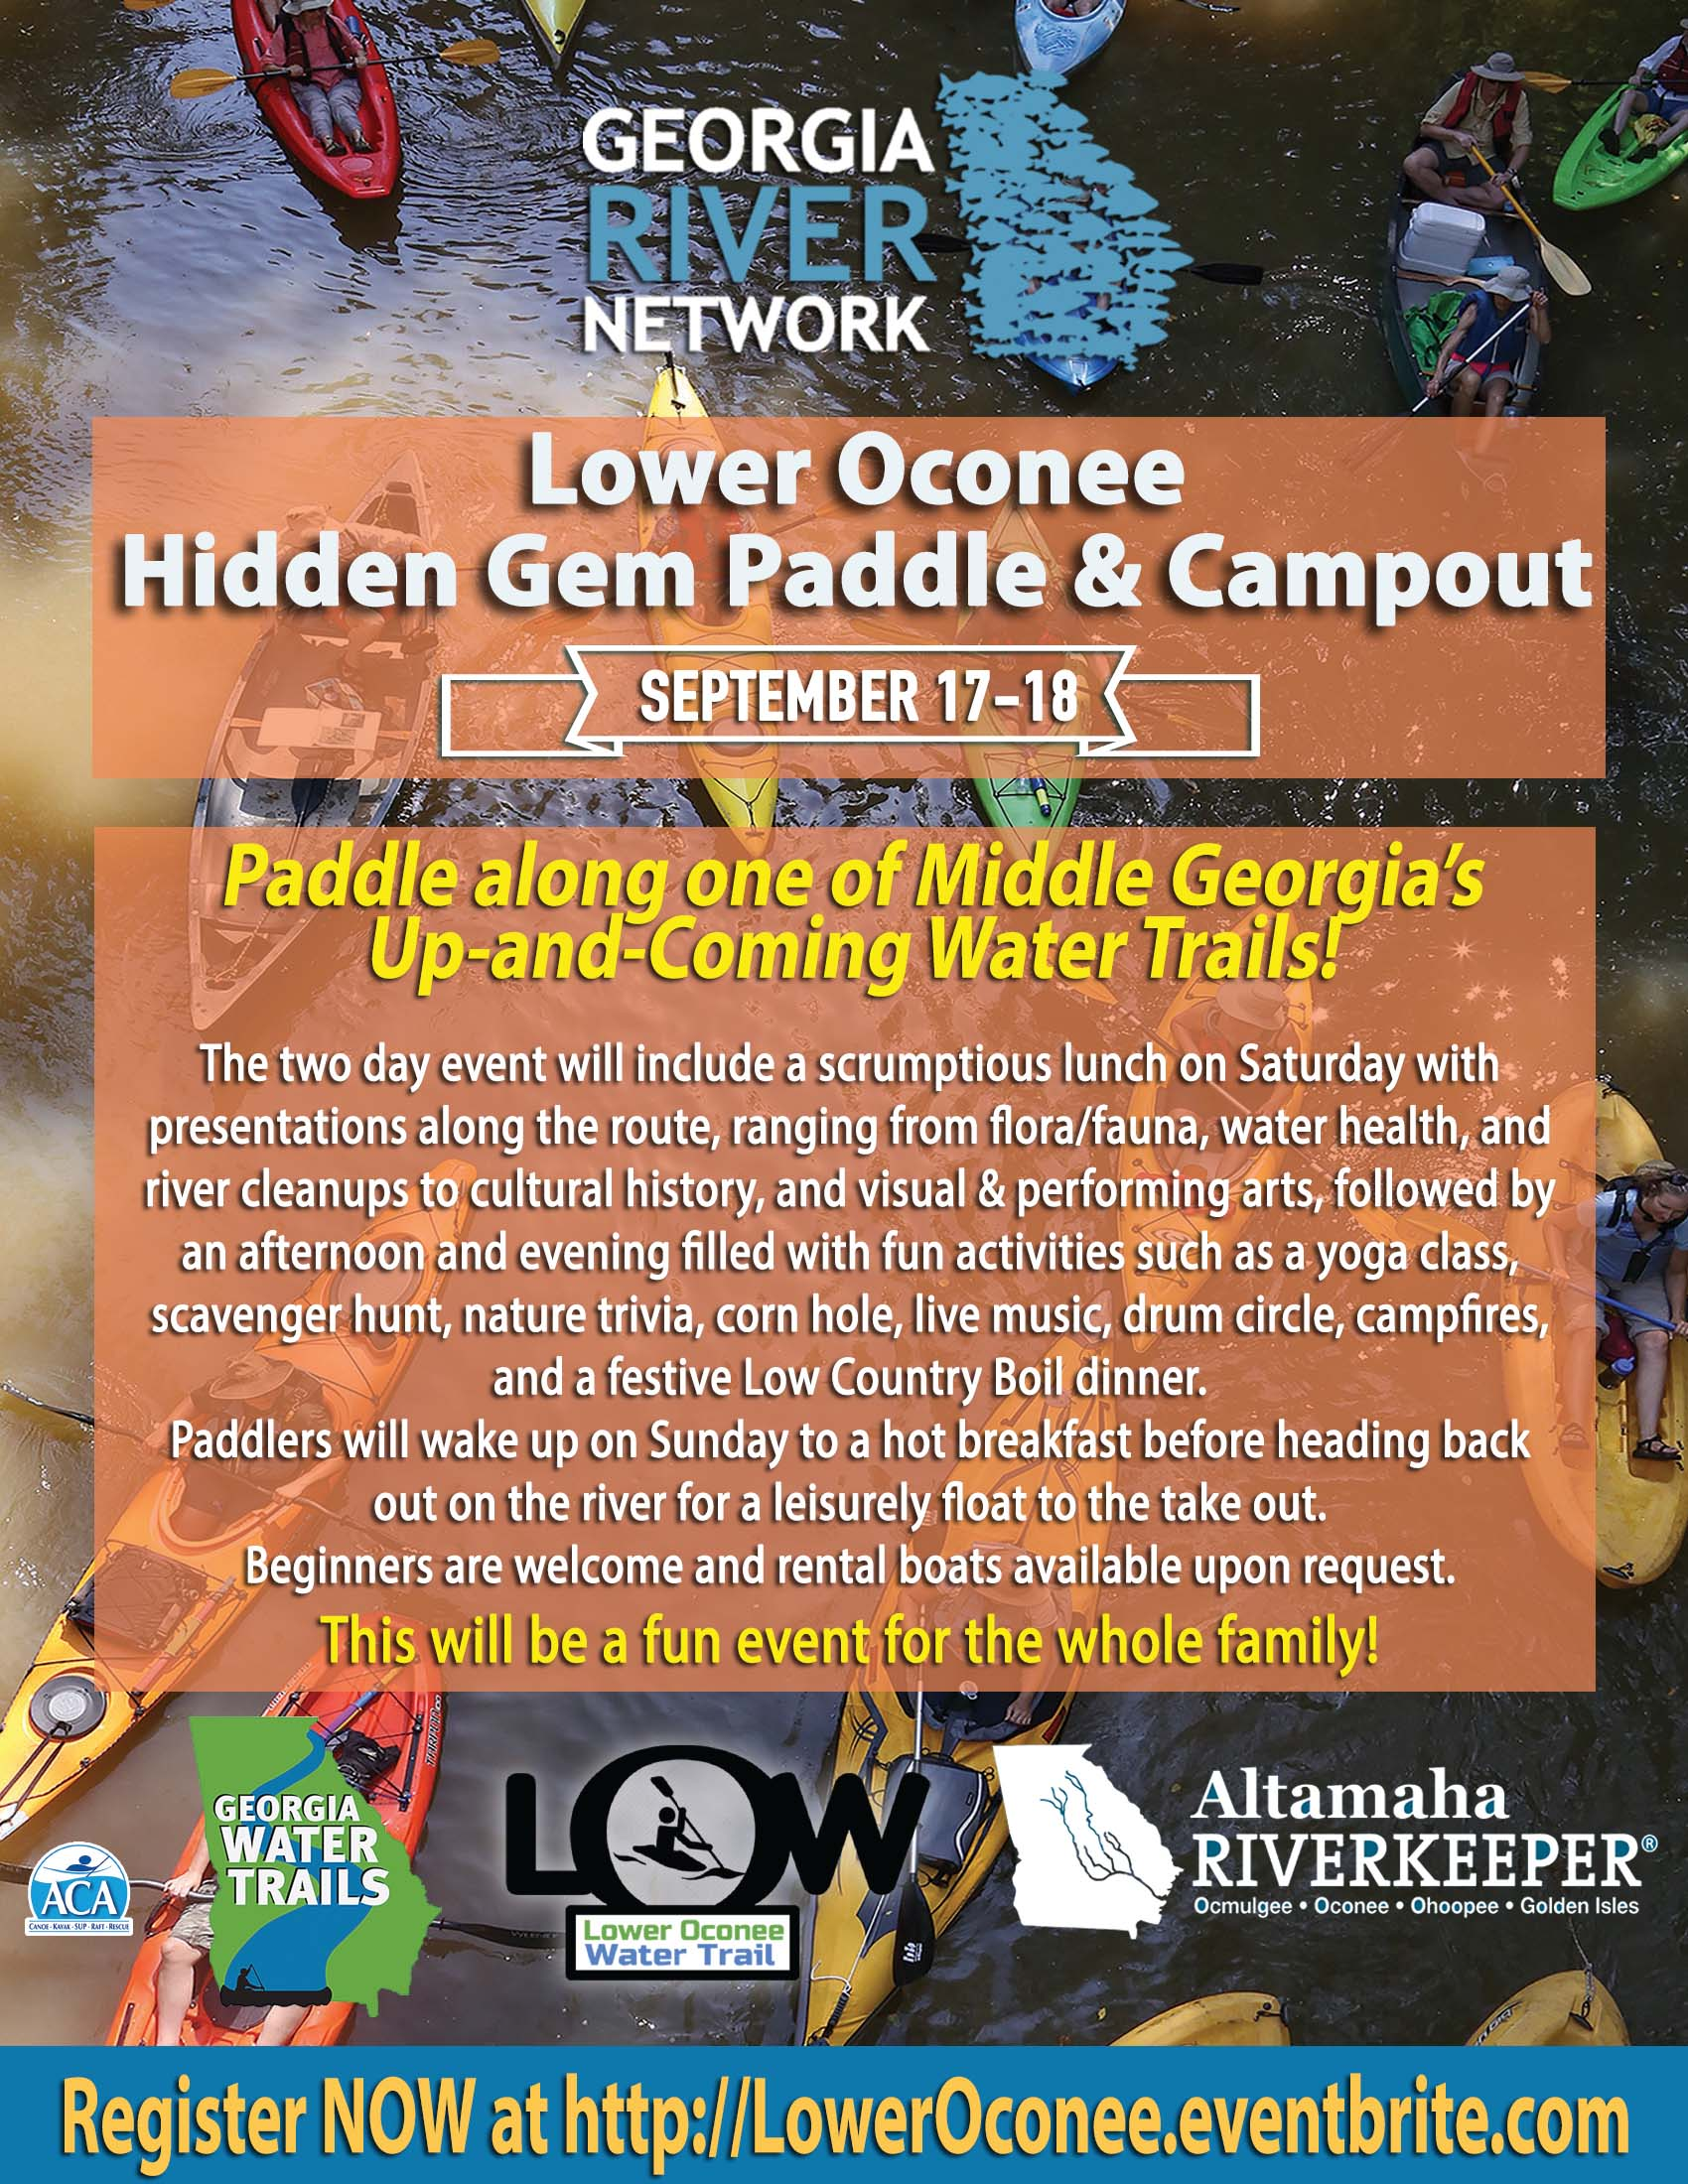 Lower Oconee Hidden Gem Paddle & Campout